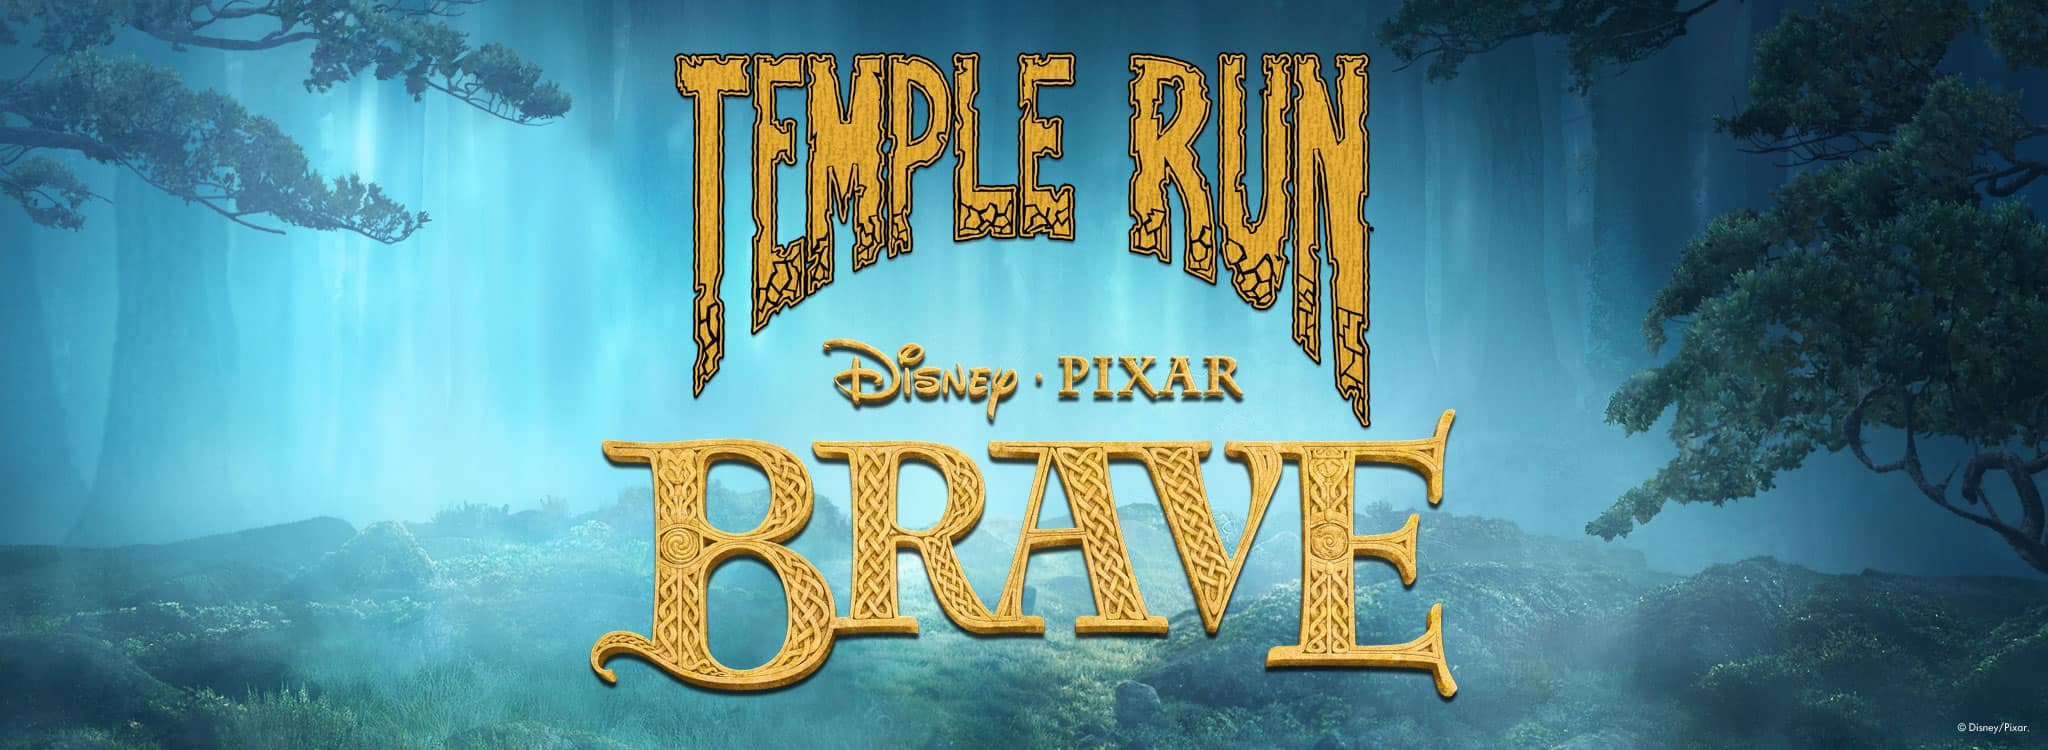 Temple Run Brave para Android